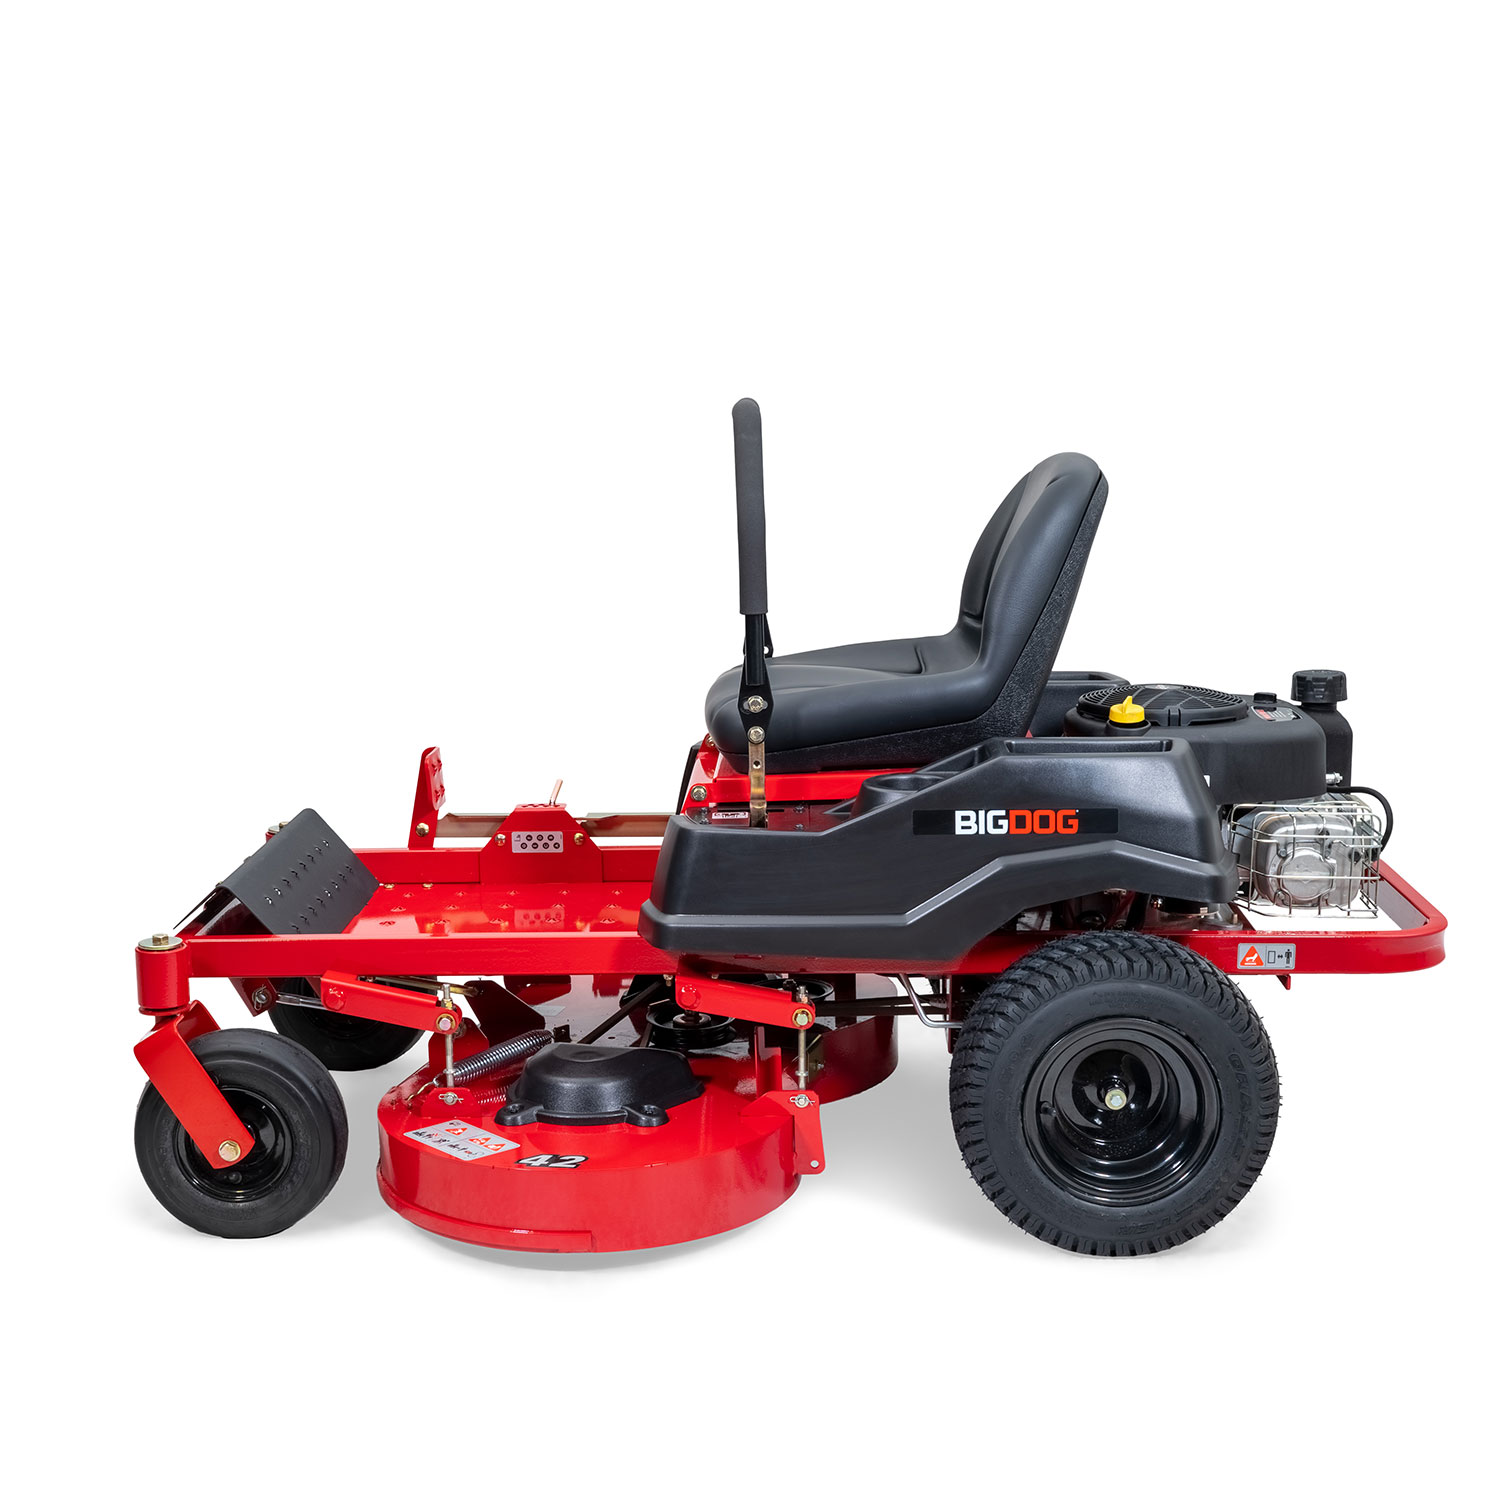 Image of the trim side of a red mower